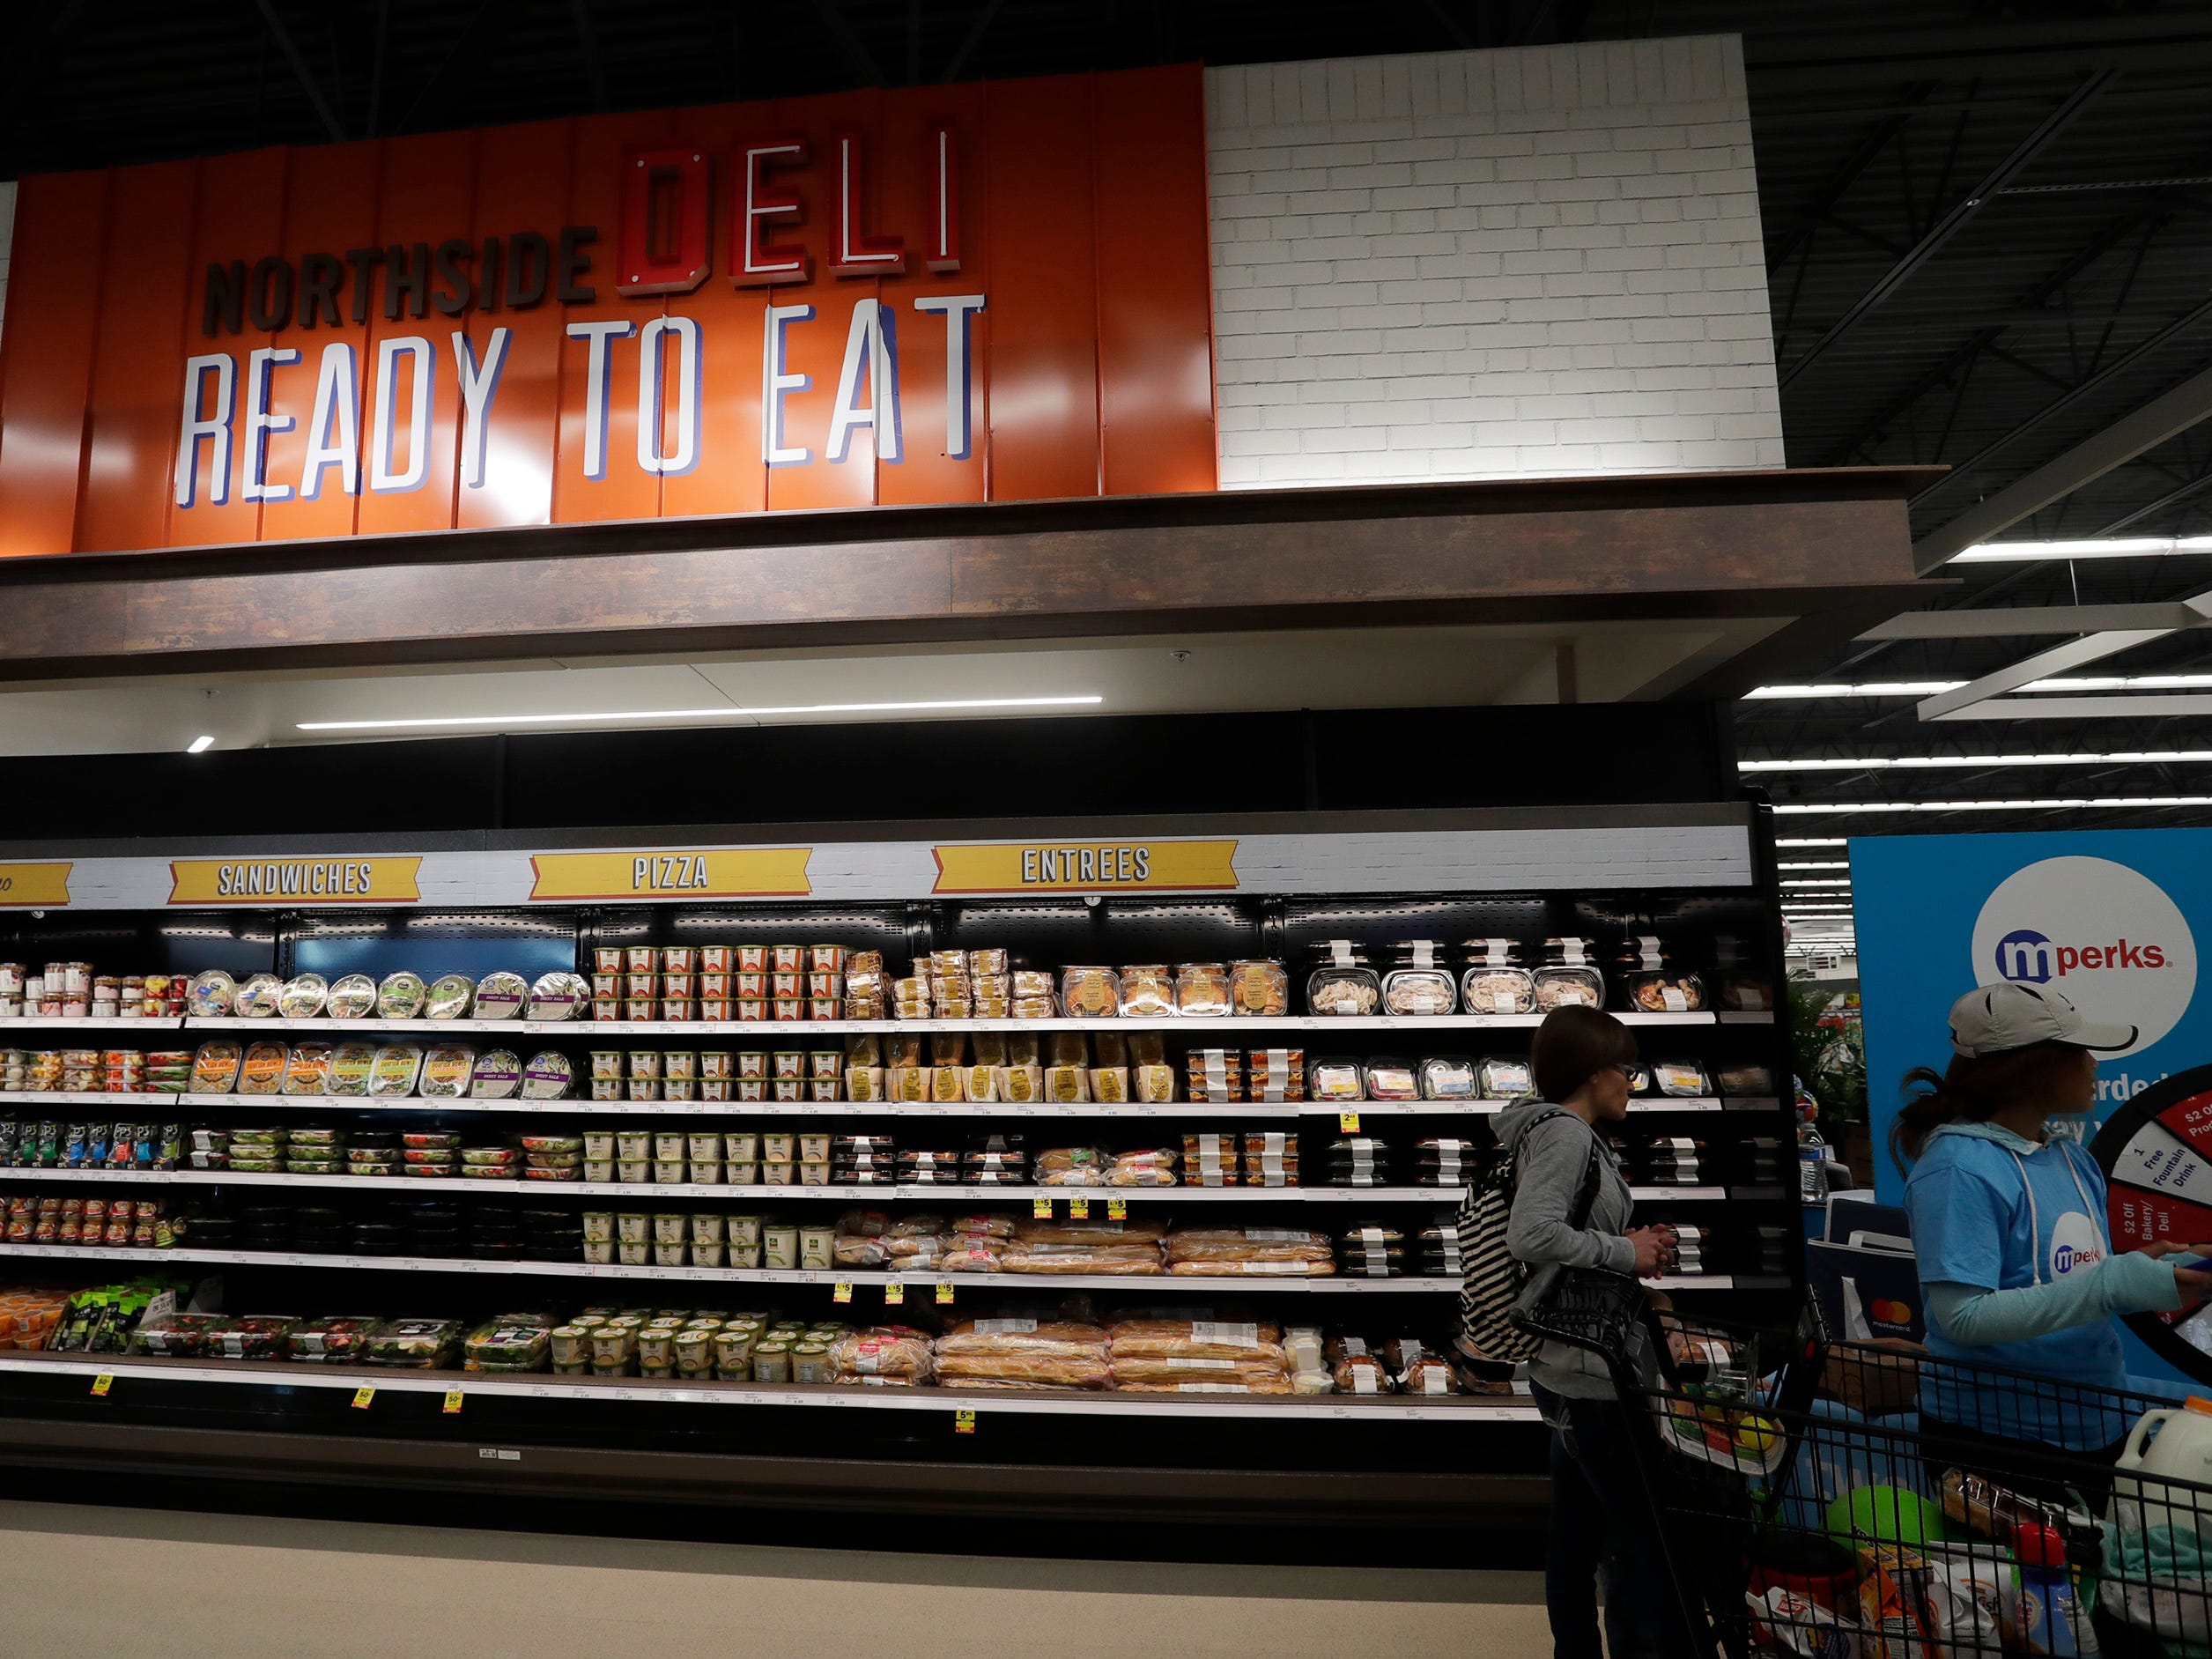 The ready to eat aisle at Meijer, Thursday April 25, 2019, in Sheboygan, Wis. The 155,000-square-foot supercenter has 300 employees on opening day.